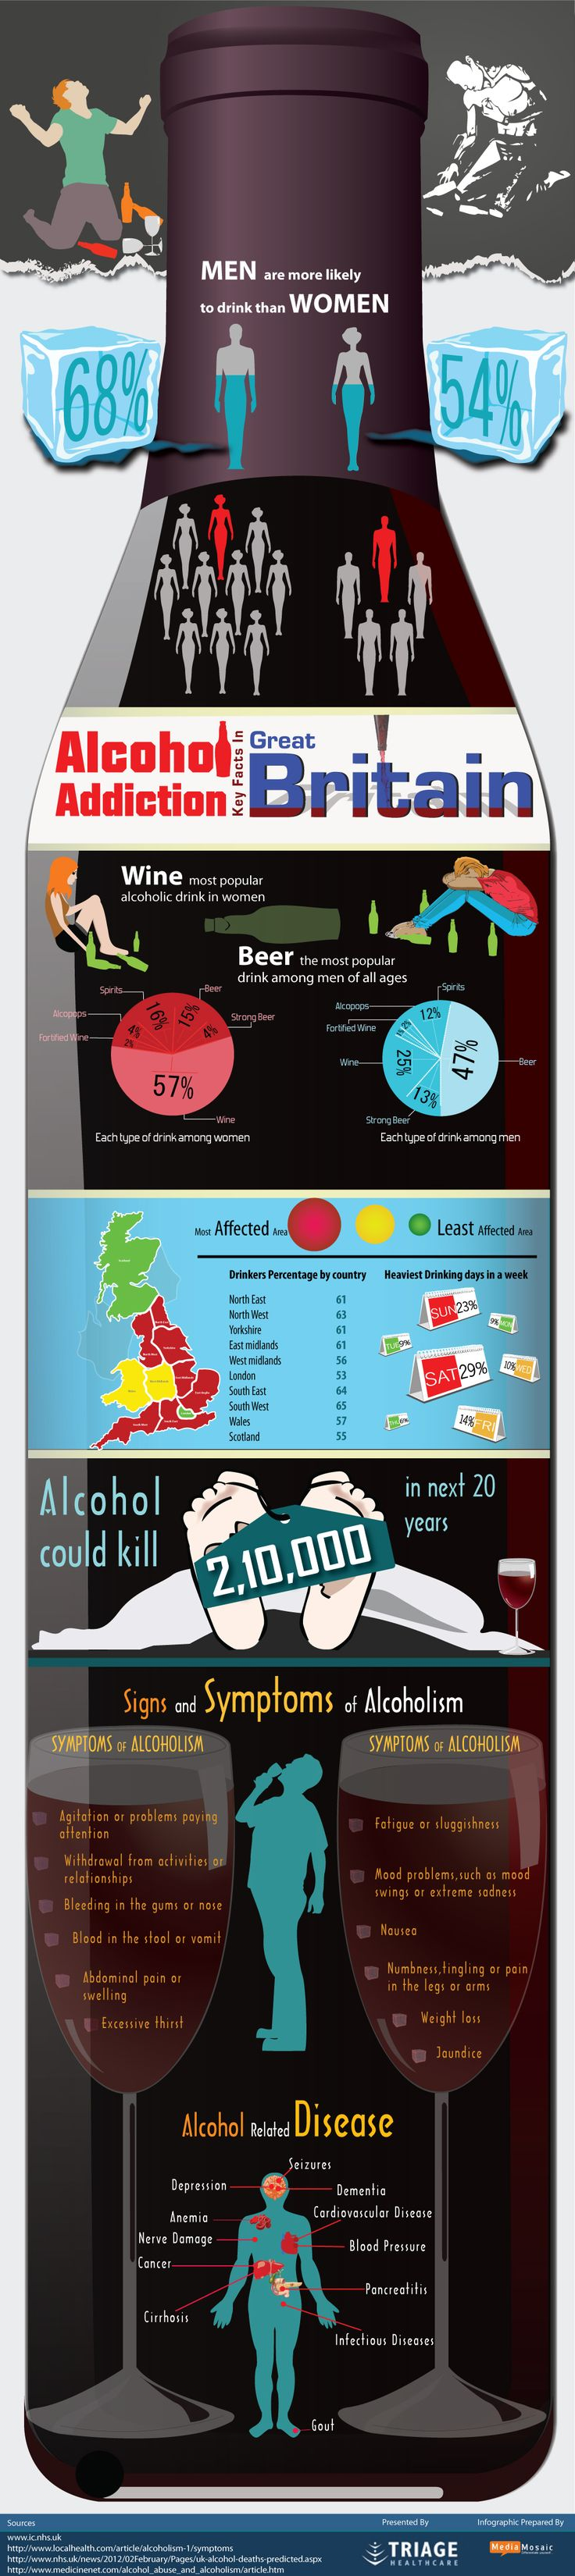 Excellent Infographic presented by Dry Out Now for Addiction, Dependency and Effects of Drinking Alcohol. Dry Out Now provides immediate access to UK